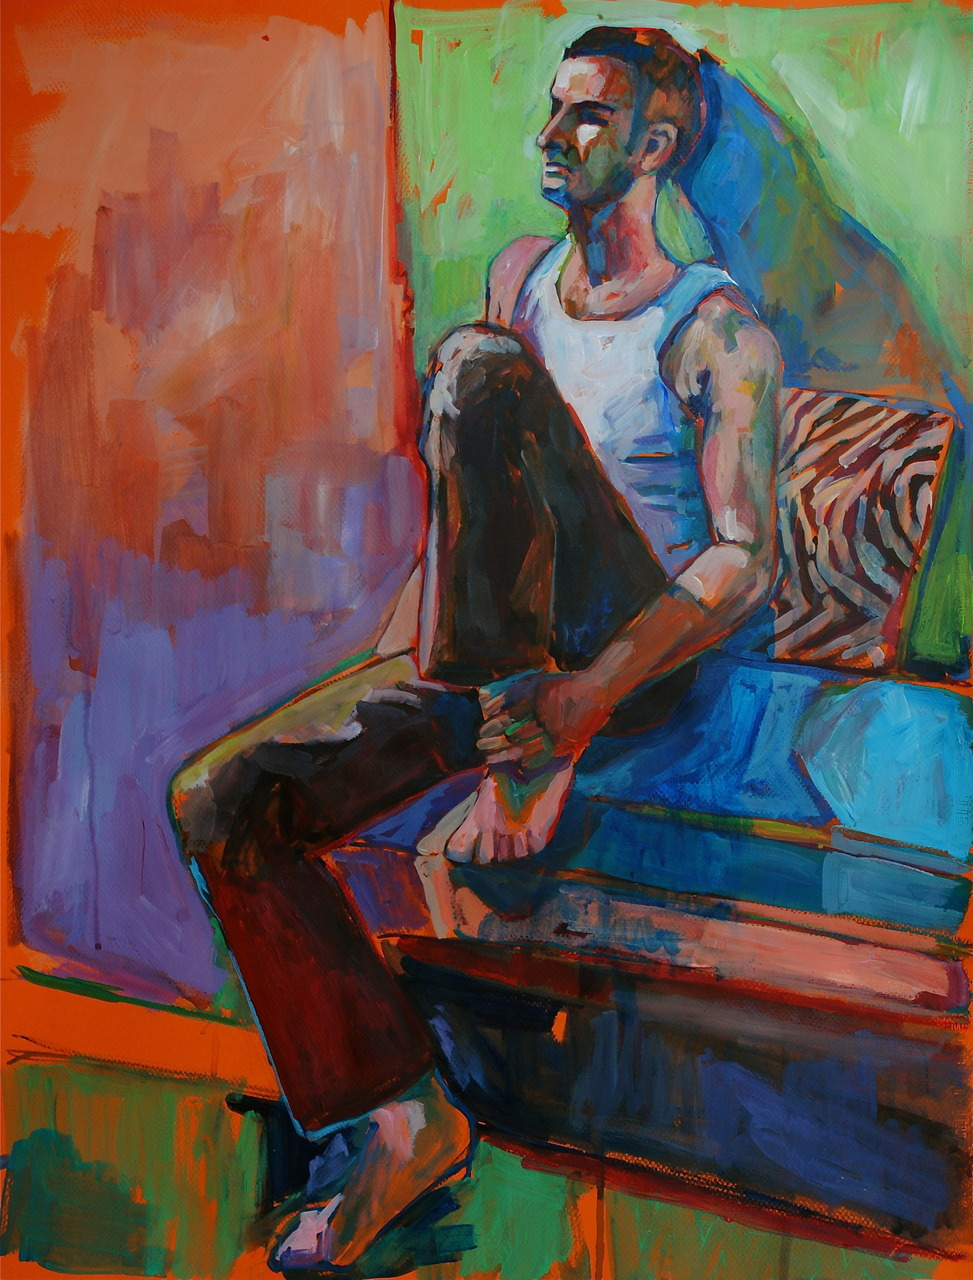 Alex. 3 hr study. Acrylic on Canson paper. 19 x 25 inches.